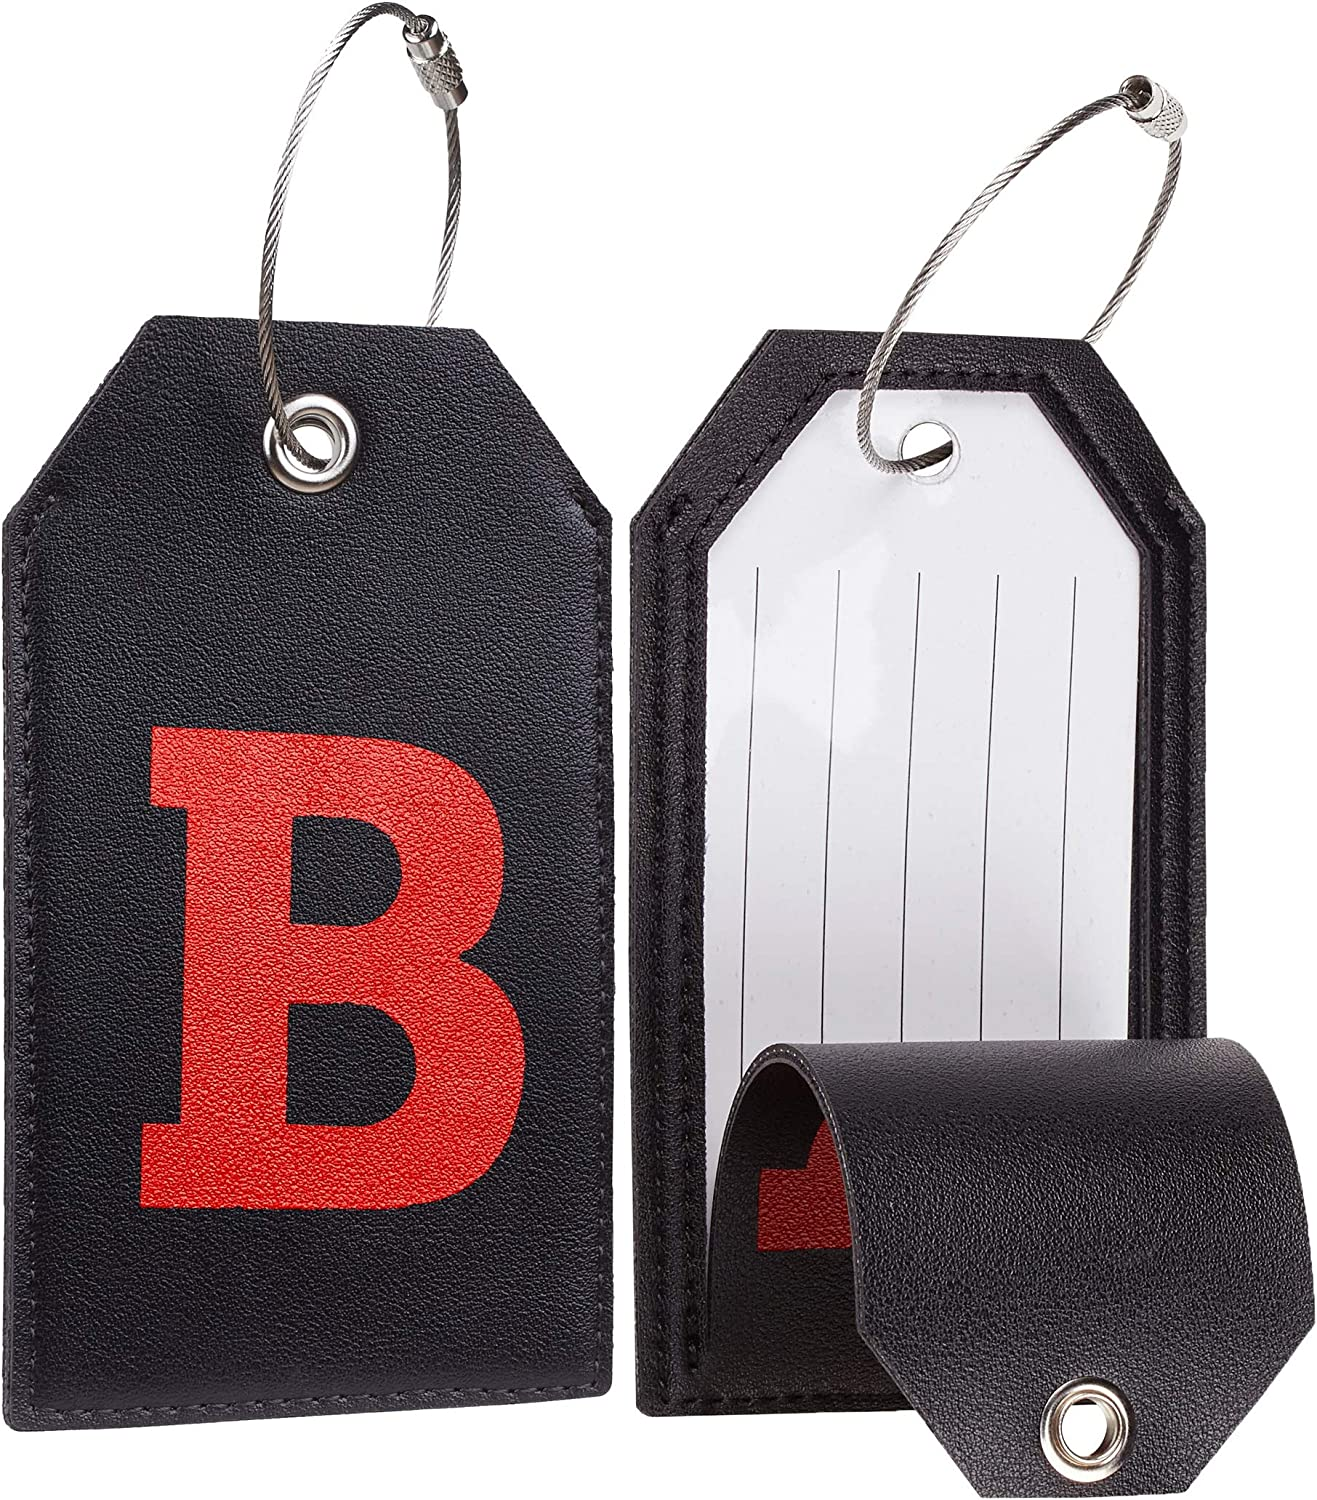 Casmonal Initial Leather Luggage Tag Travel Bag Tag Fully Bendable 2 PCS set A